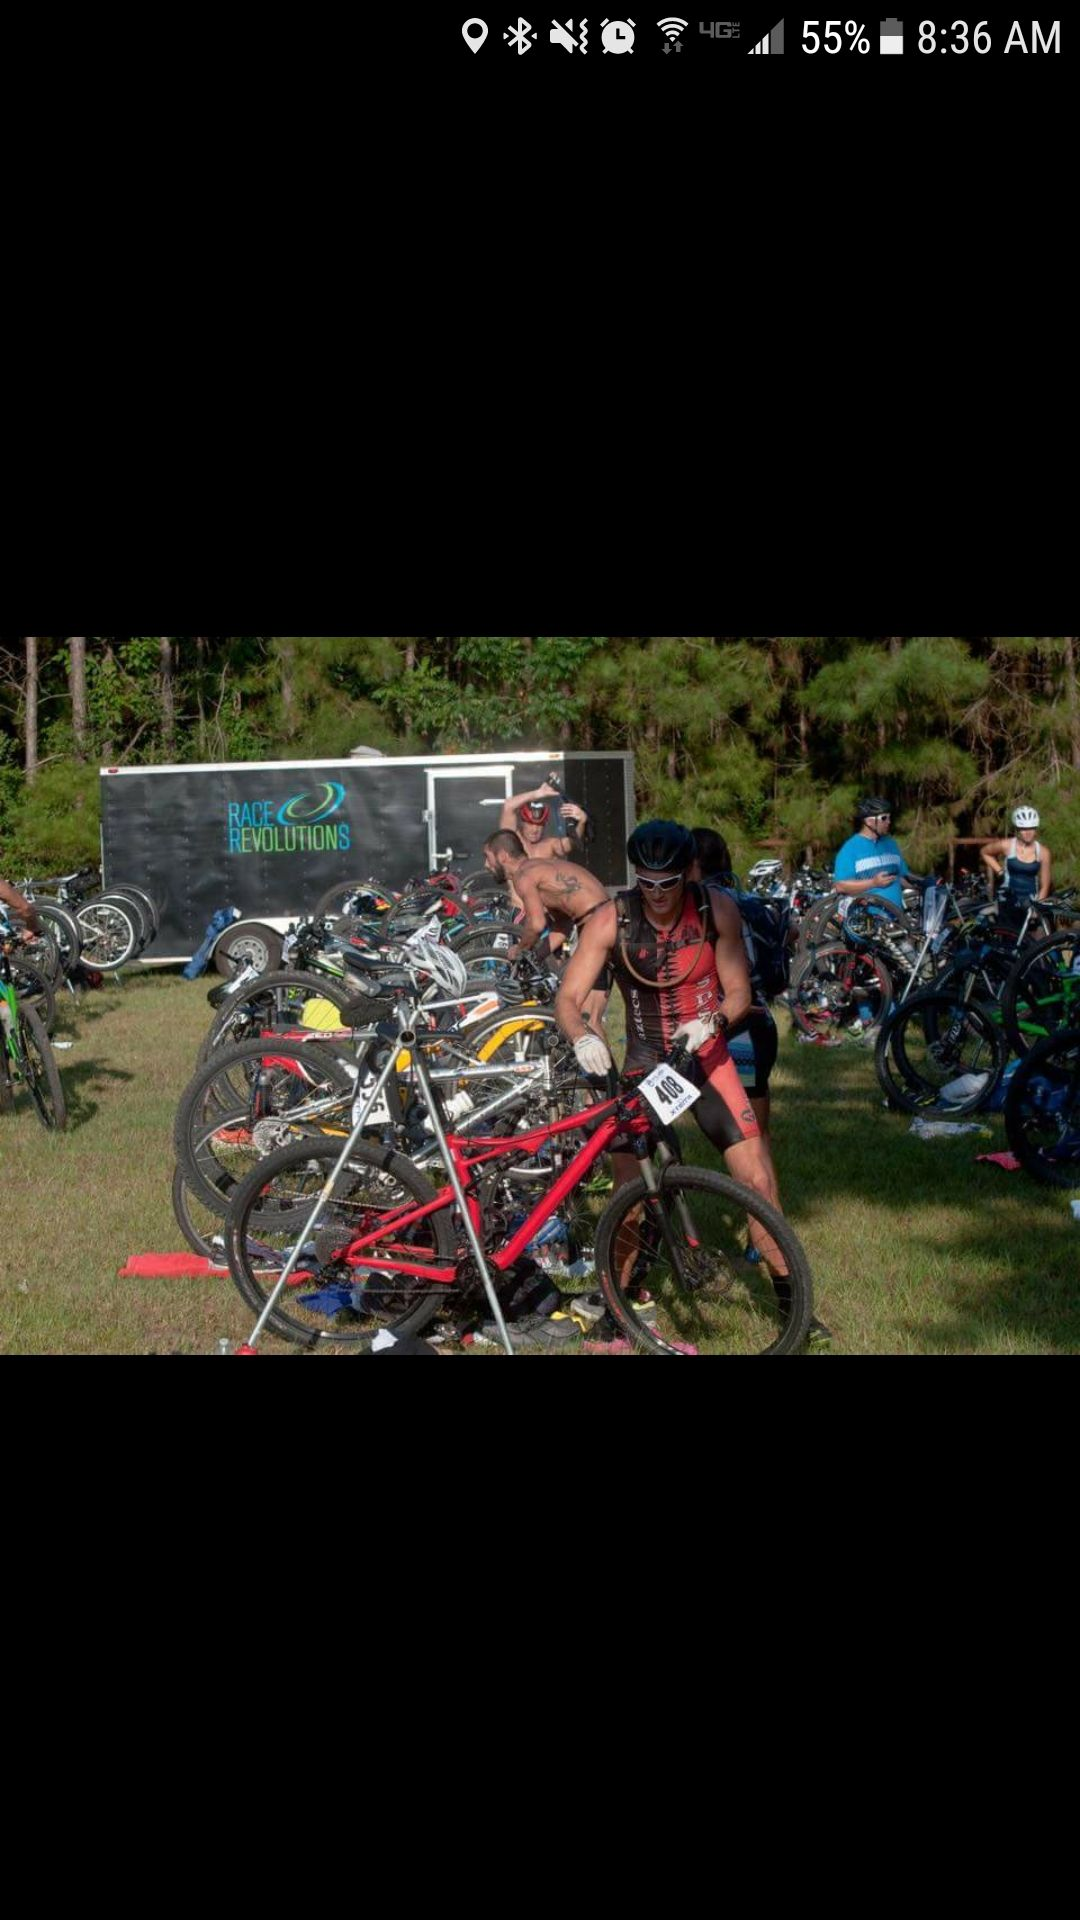 I had to do a double take when scrolling through local Triathlon photos.